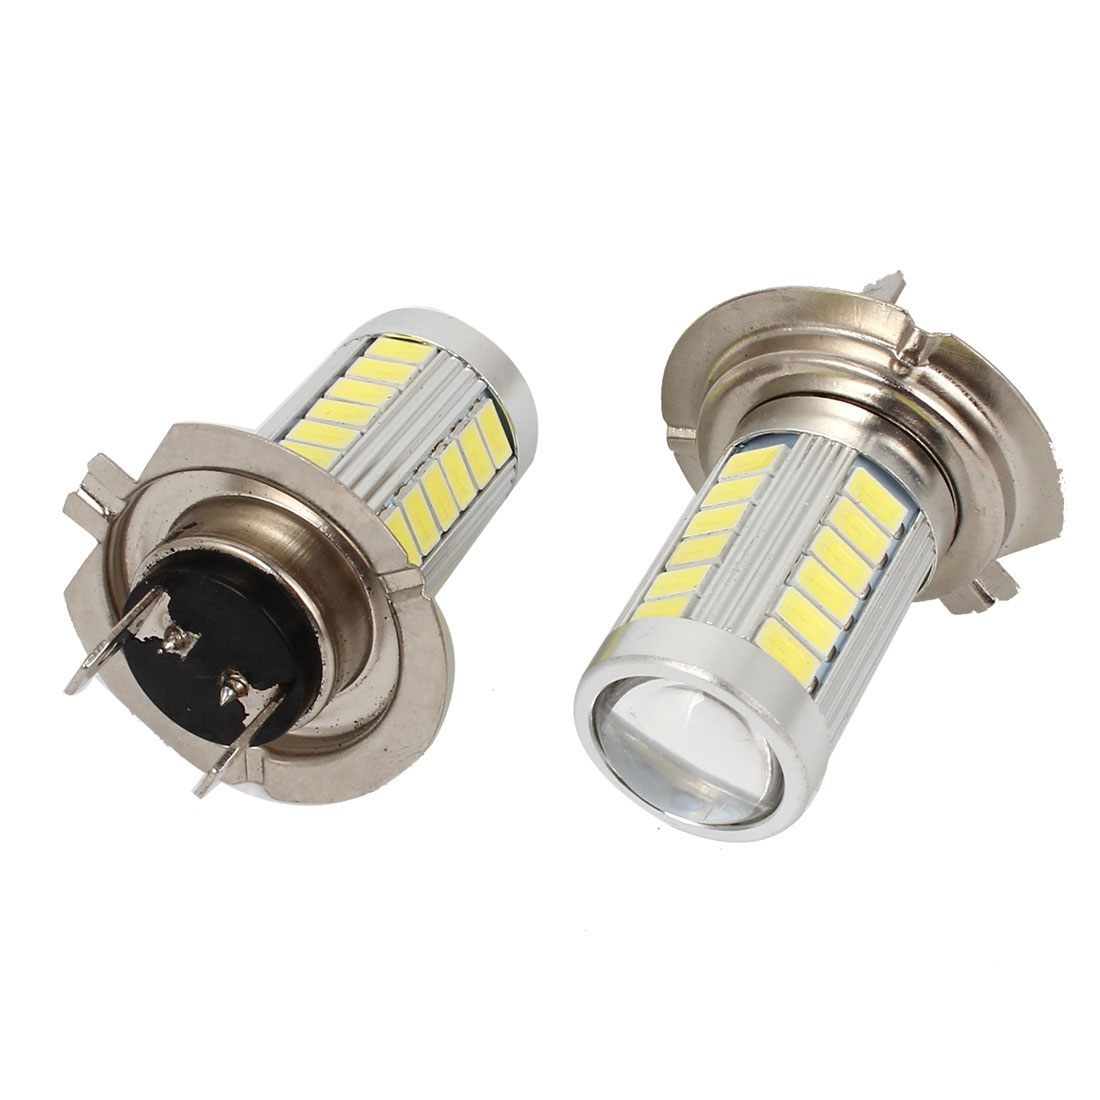 2 Pcs Car H7 33 5630 SMD LED Lens White DRL Foglight Headlight Bulb 12V